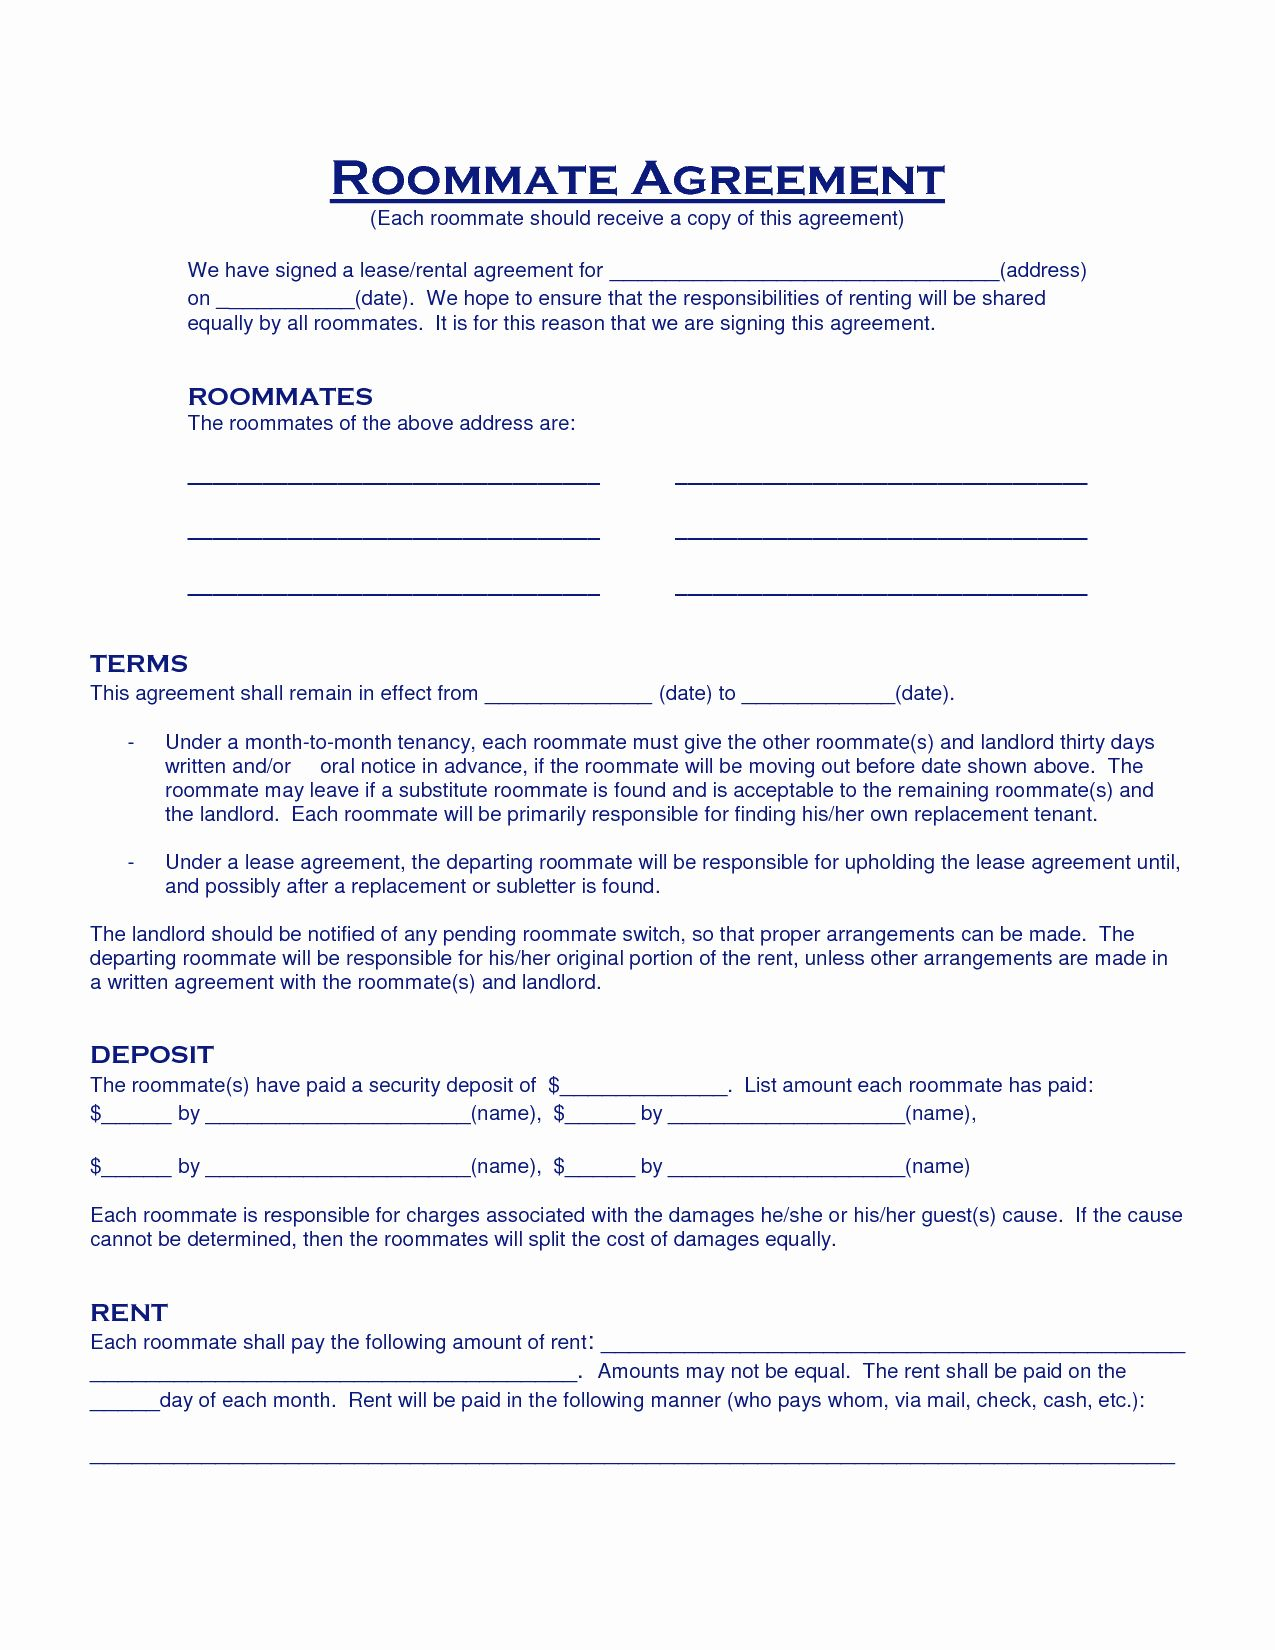 Roommate Rental Agreement Template Unique Roommate